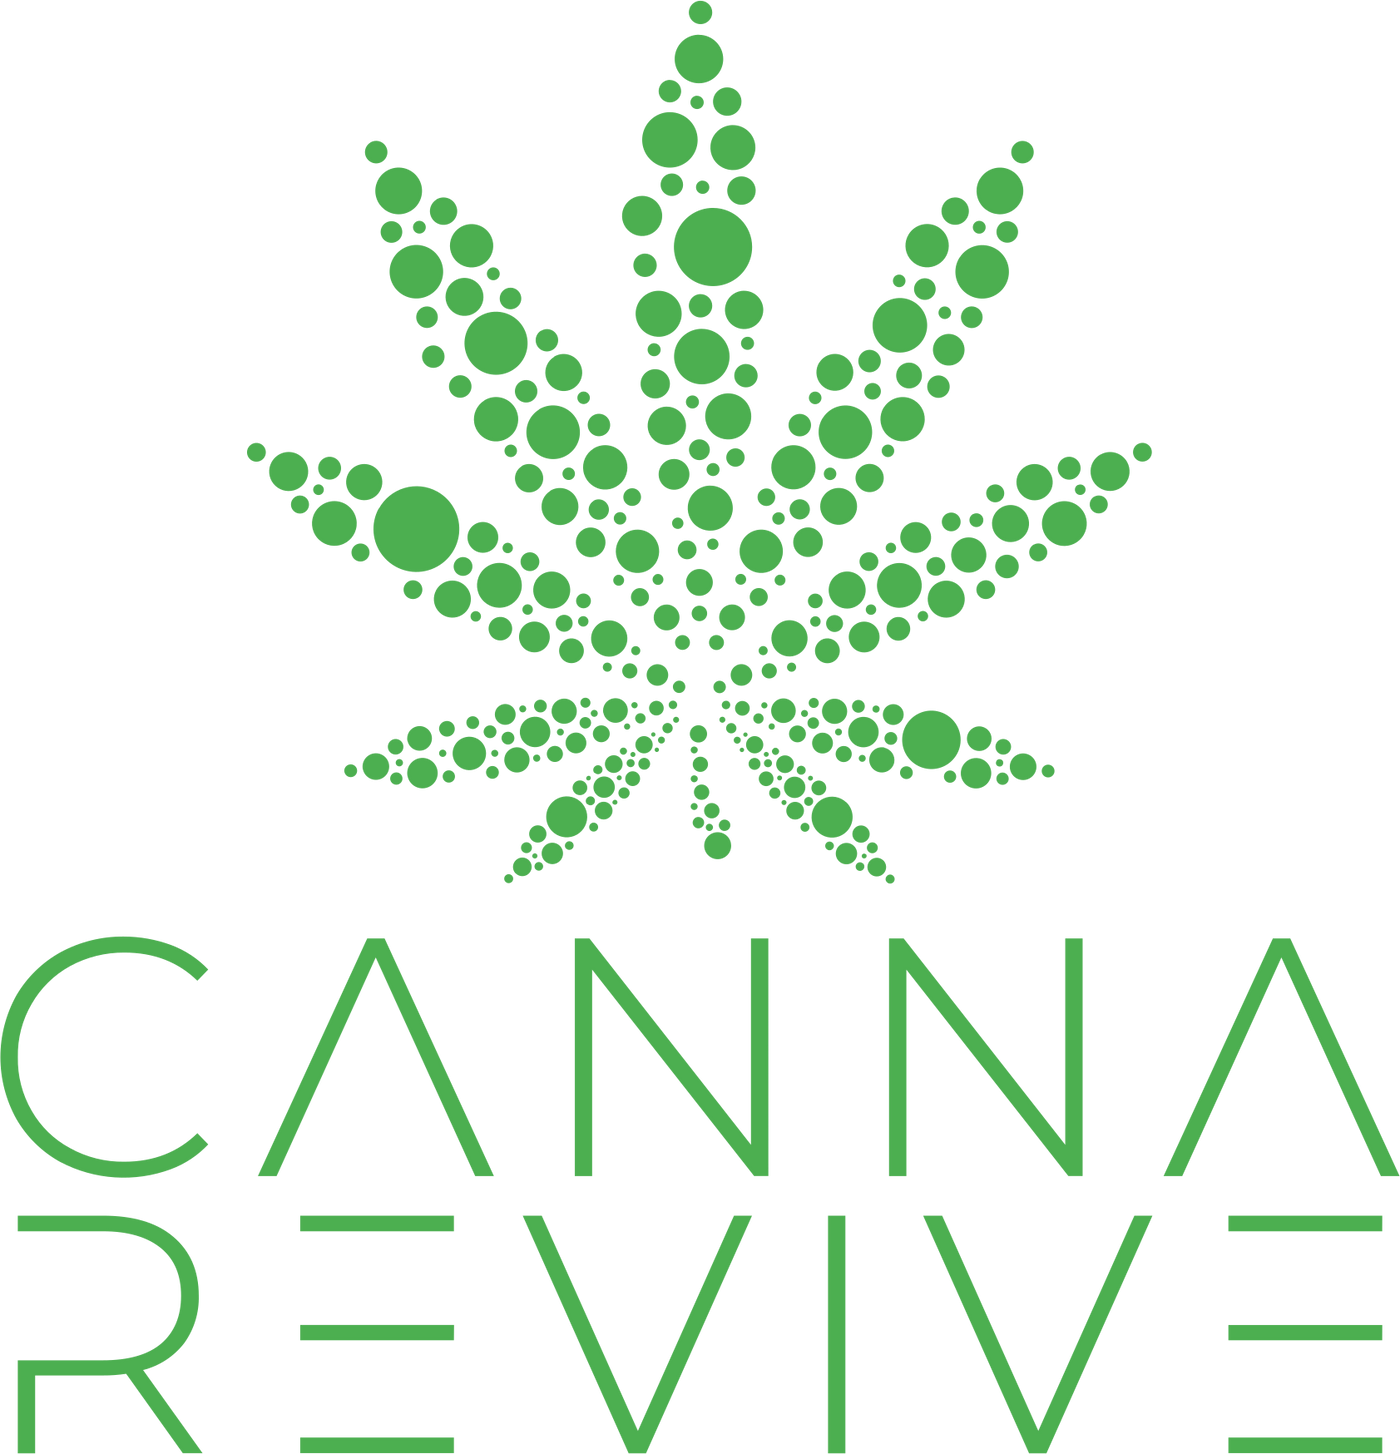 Canna Revive